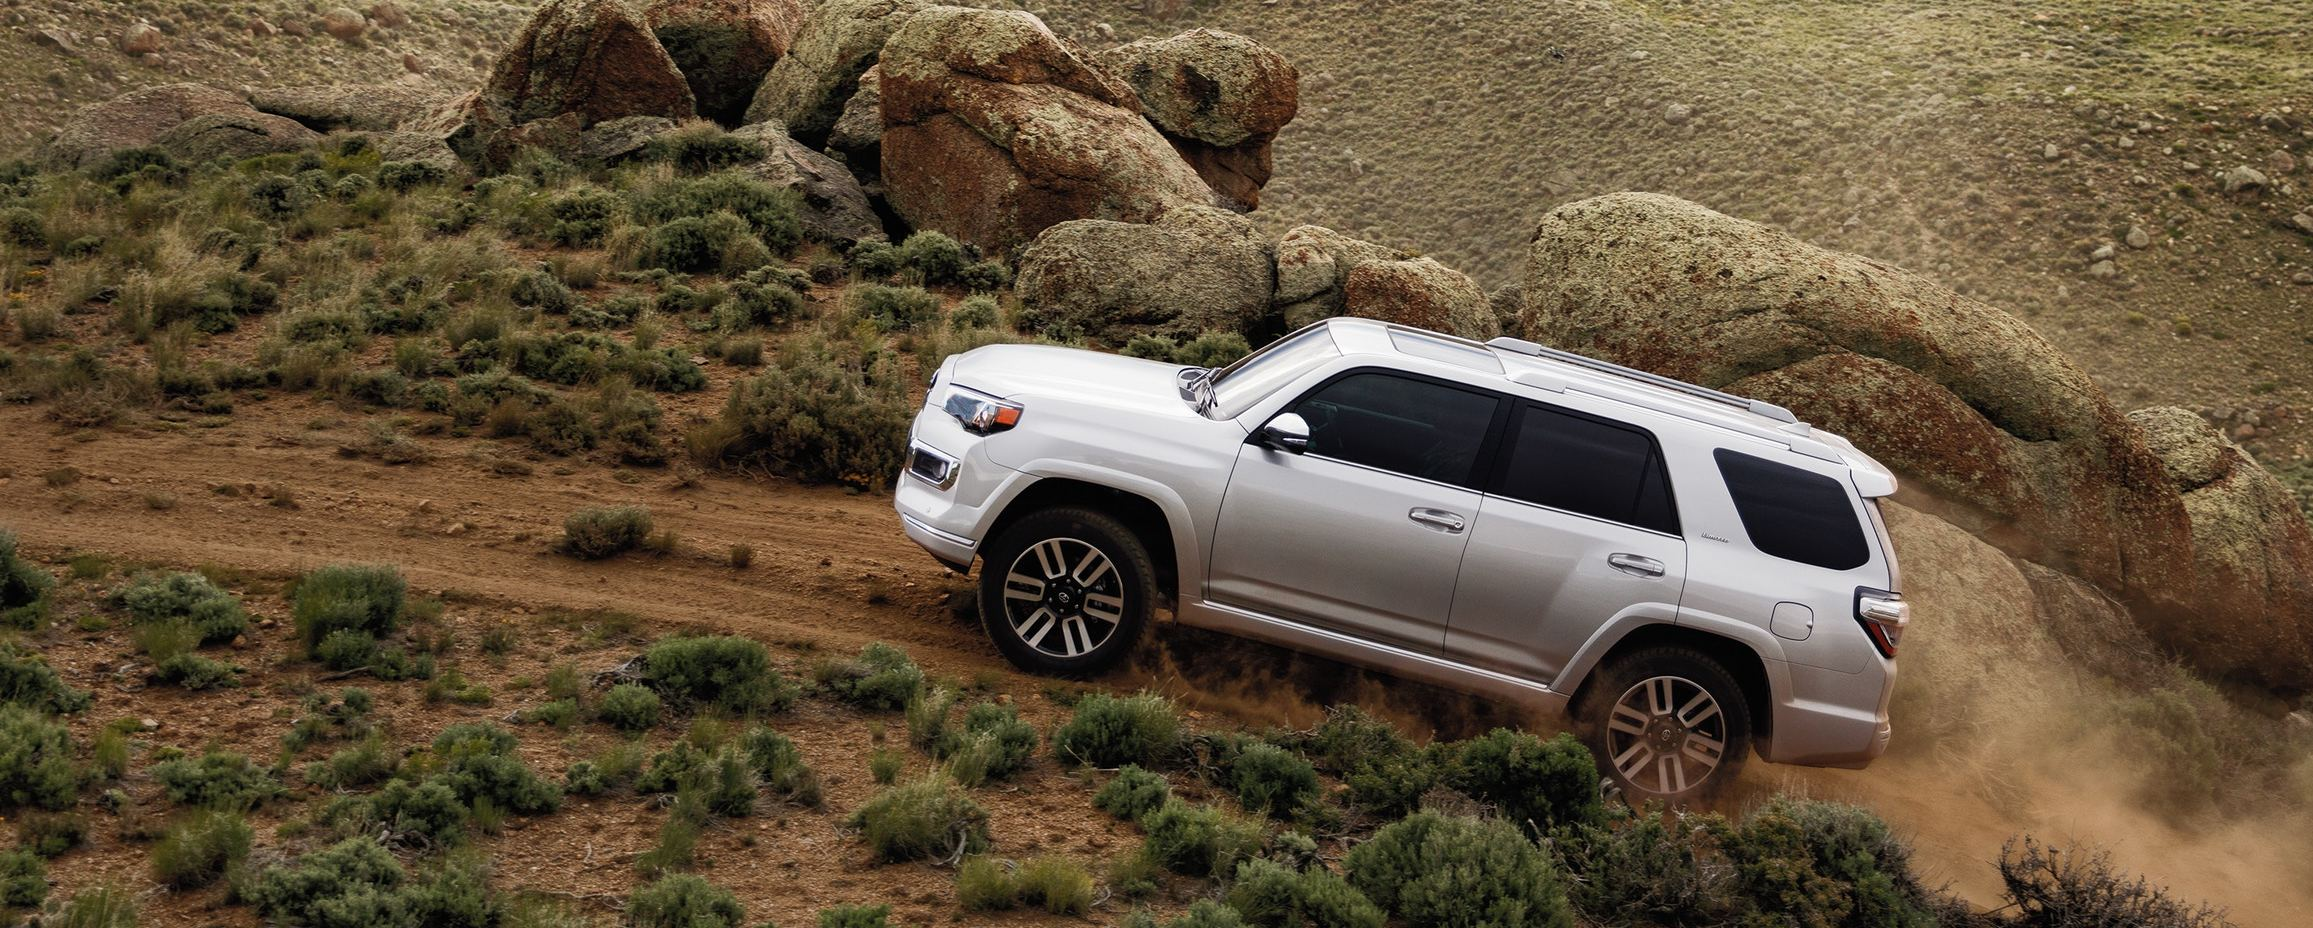 2020 Toyota 4Runner for Sale near Pittsburgh, PA